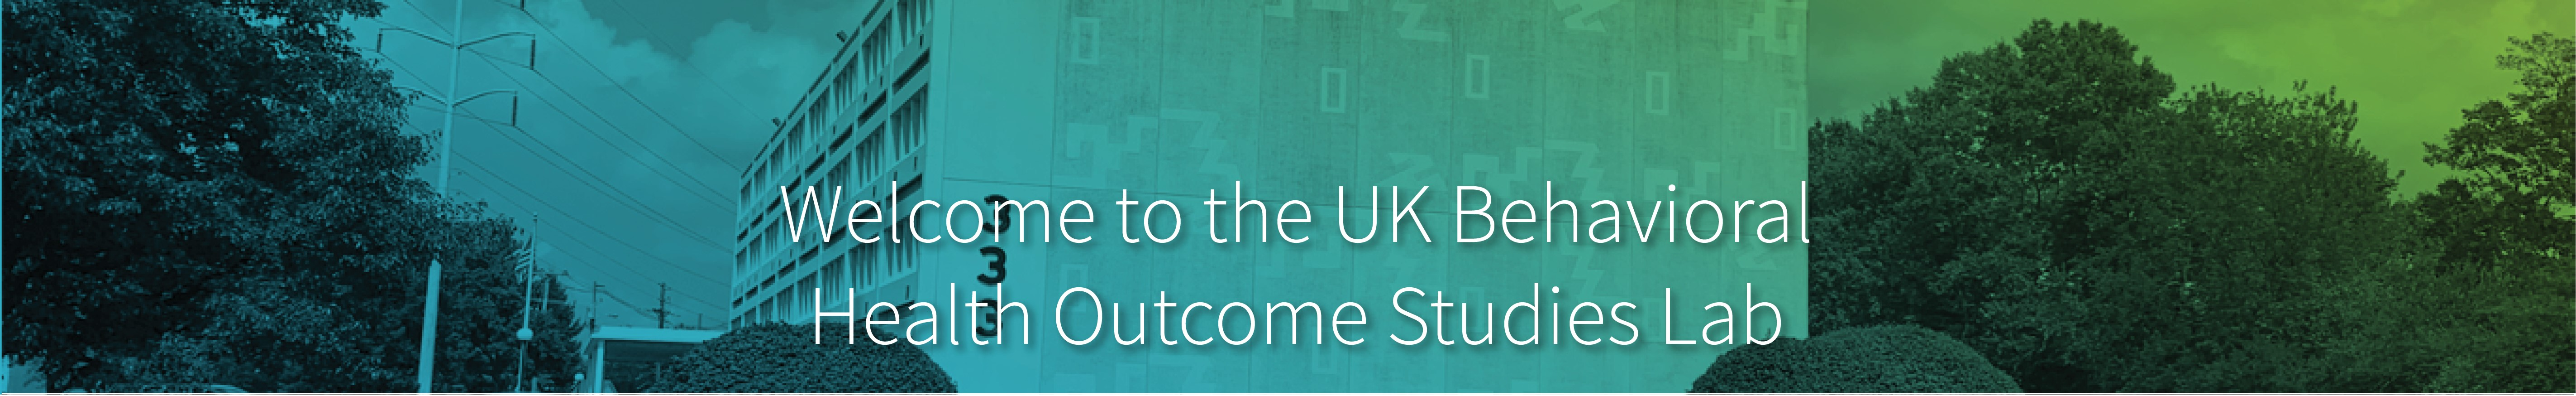 Welcome to the UK Behavioral Health Outcome Studies Lab